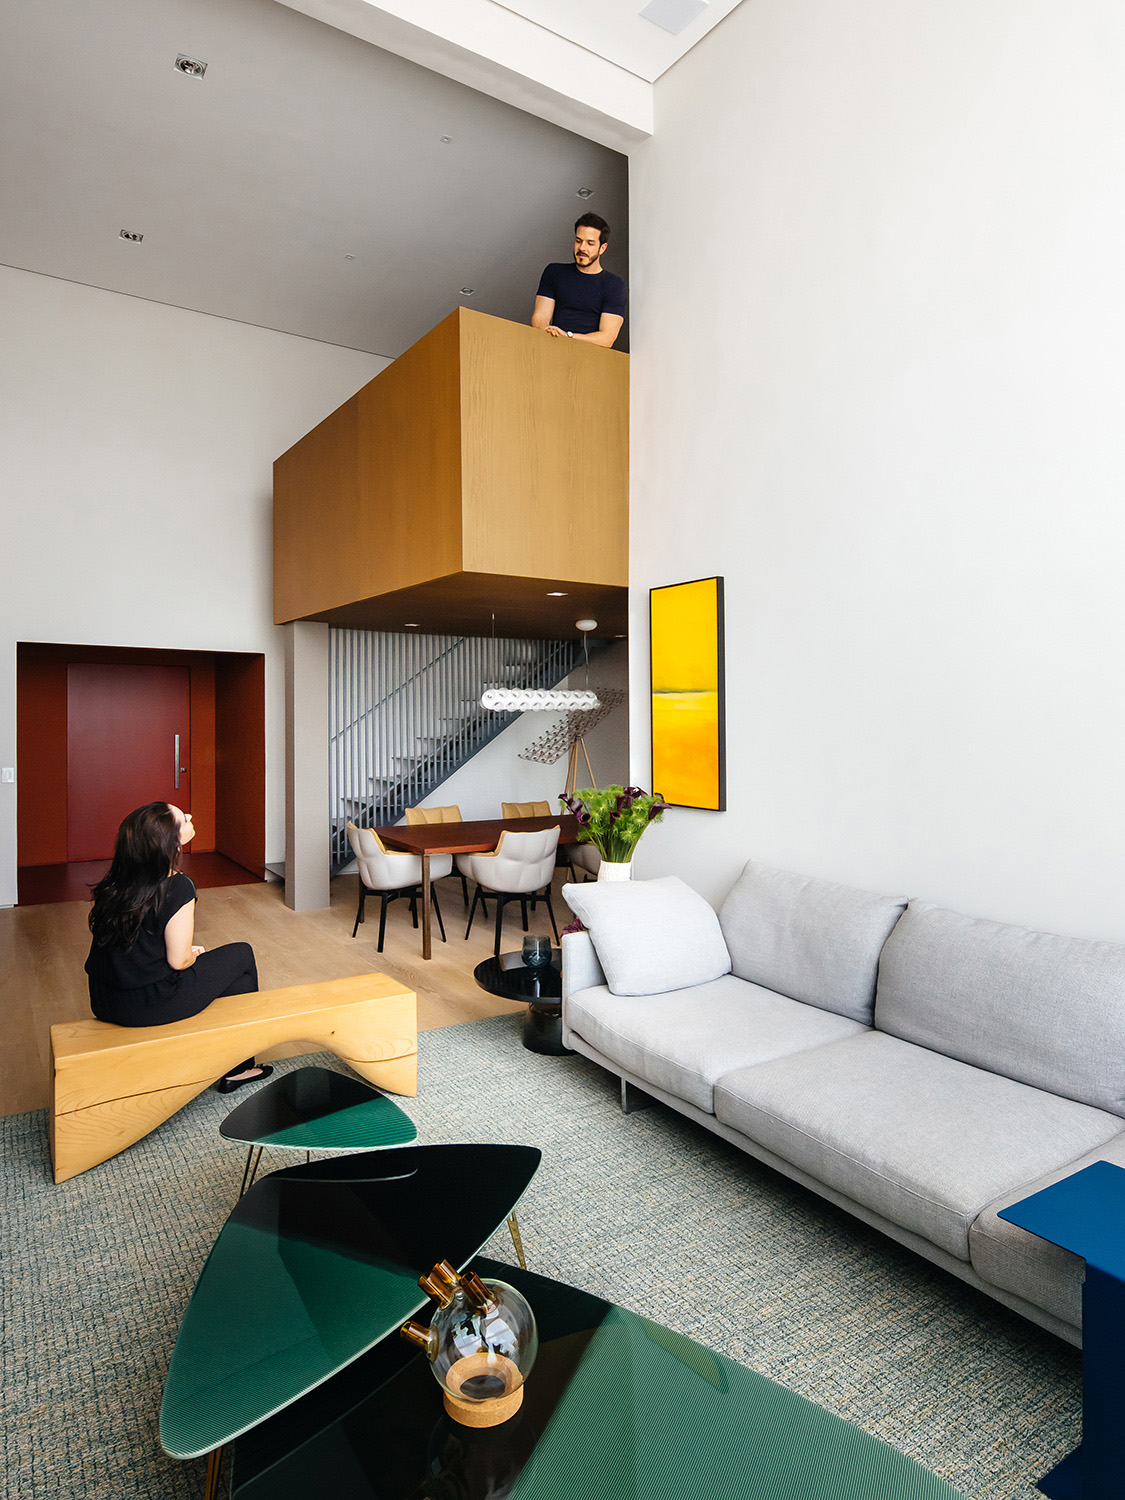 Mezzanine and dining room seen from the living room Pedro Kok